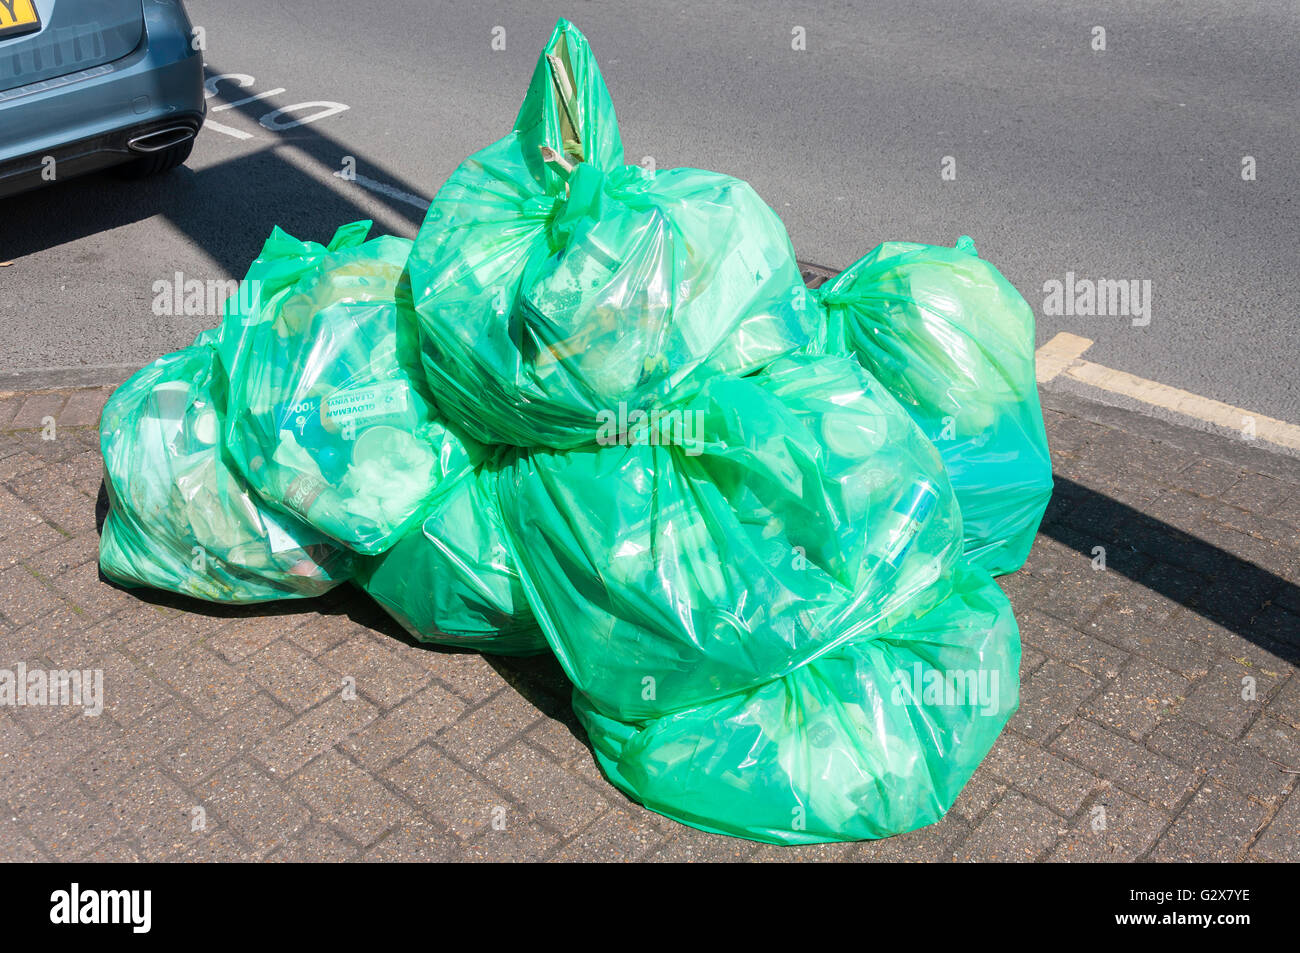 Recycling Locations Stock Photos & Recycling Locations Stock Images ...